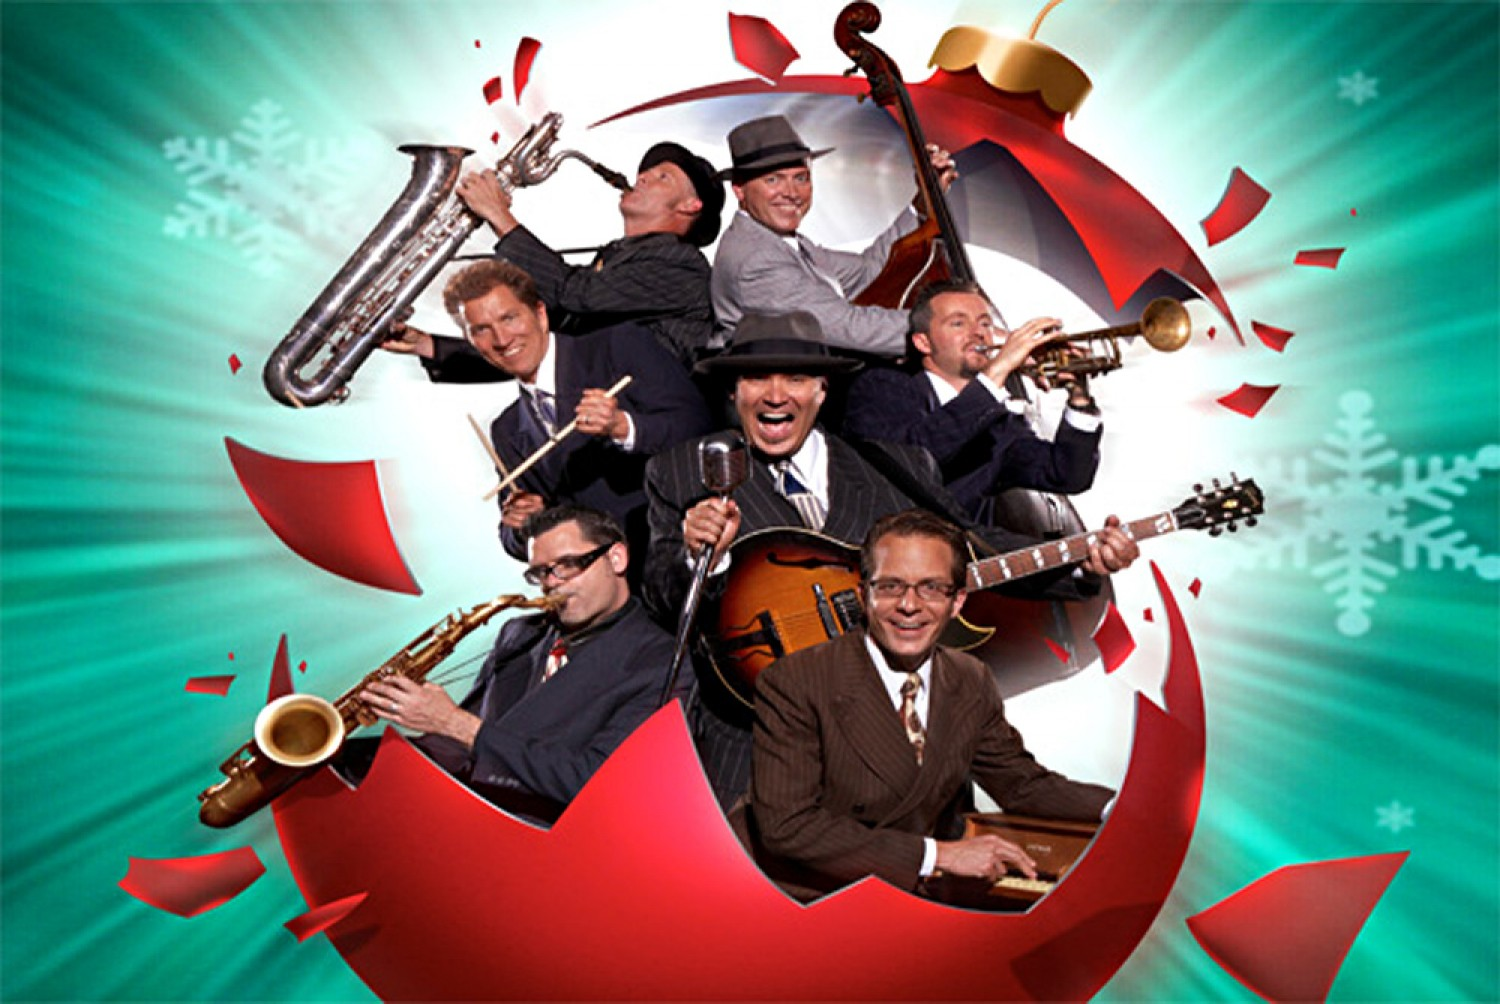 Big Bad Voodoo Daddy Christmas December 12 Ekucenter Com